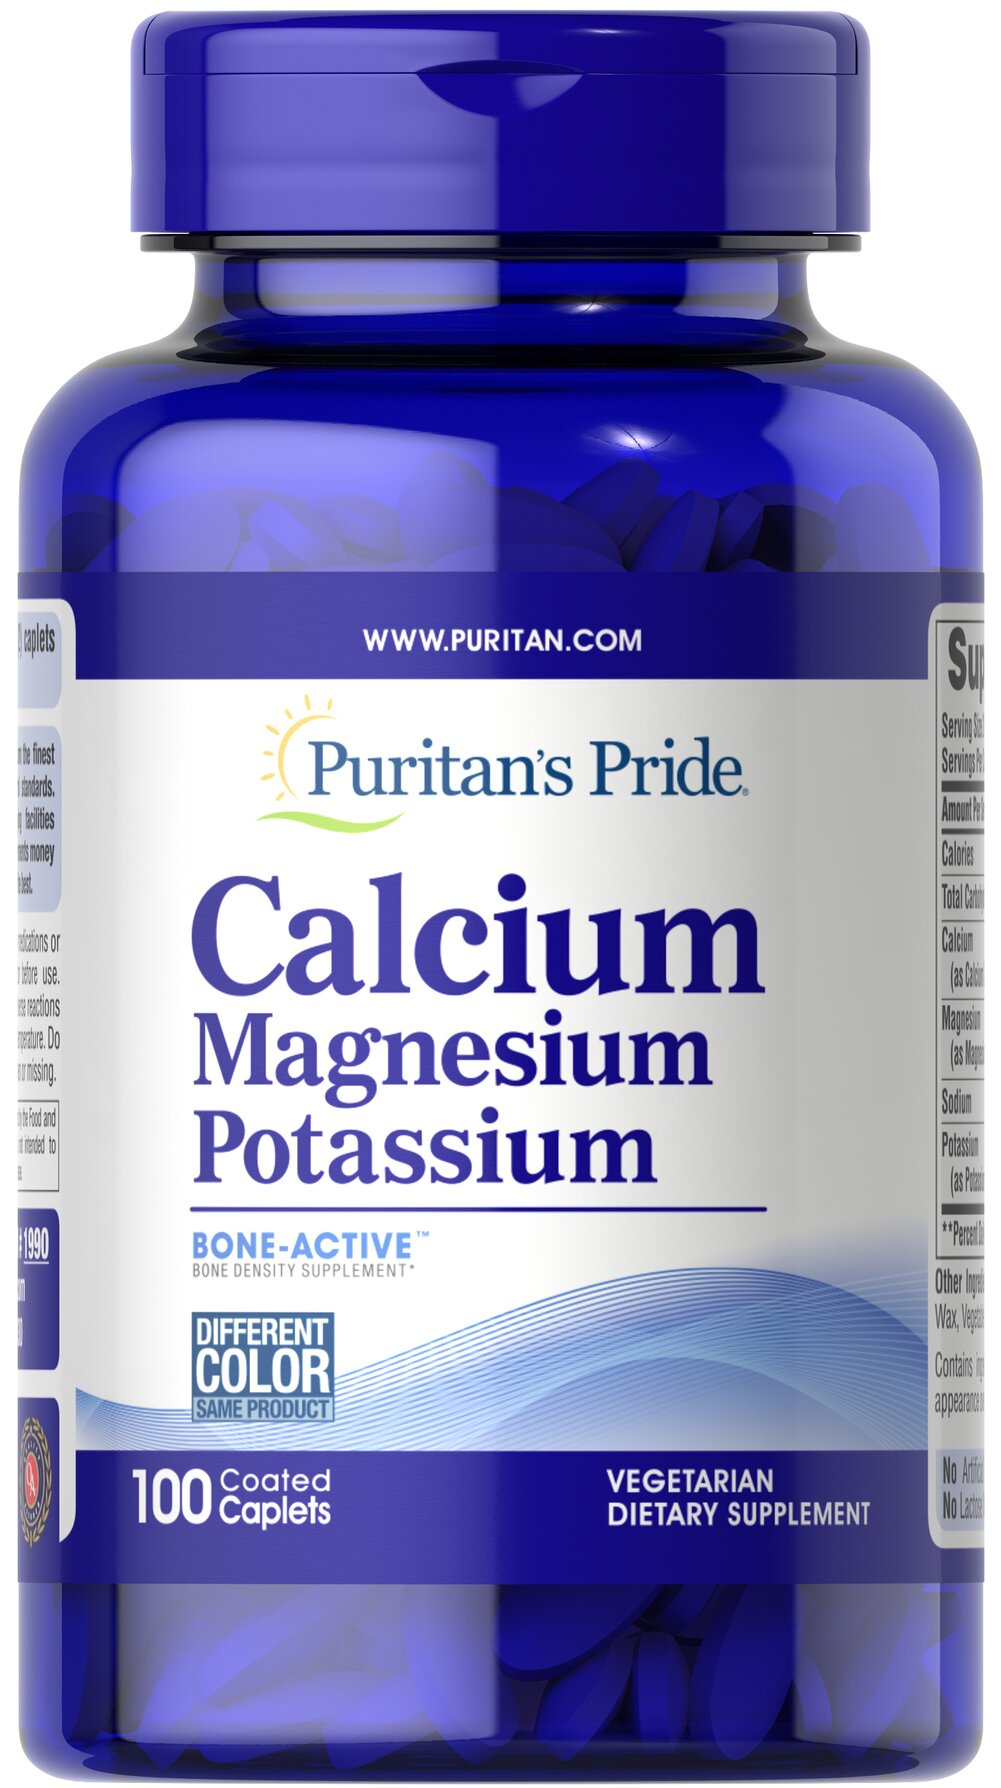 Calcium Magnesium Potassium <p>Cal/Mag/Potassium tablets contain three important minerals (calcium, magnesium, and potassium) that work together synergistically for better absorption and bioavailability.</p><p><strong>Two (2) tablets contain 500 mg Calcium, 500 mg Magnesium and 99 mg Potassium.</strong></p> 100 Caplets 250 mg/49 mg $9.26